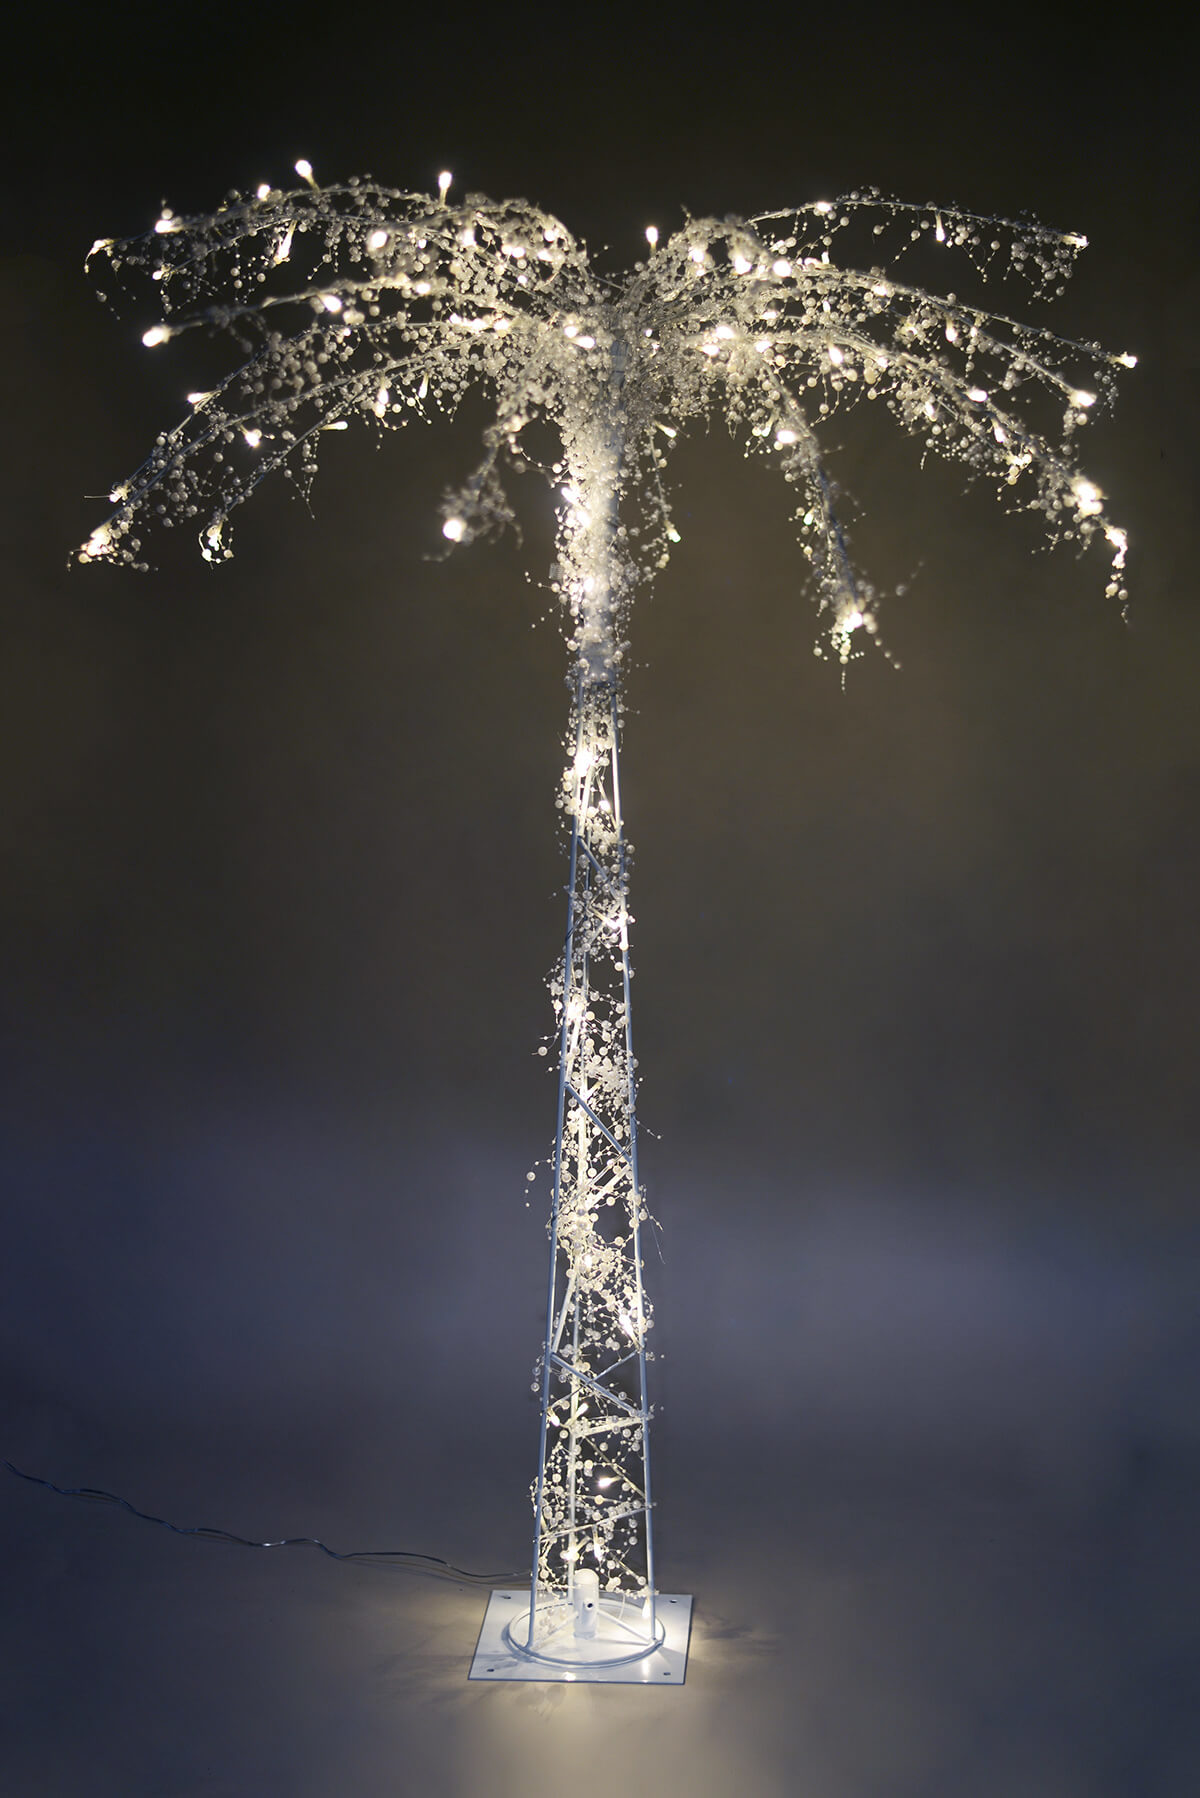 LED Lighted Palm Tree 4 Feet, 100 Warm White Lights